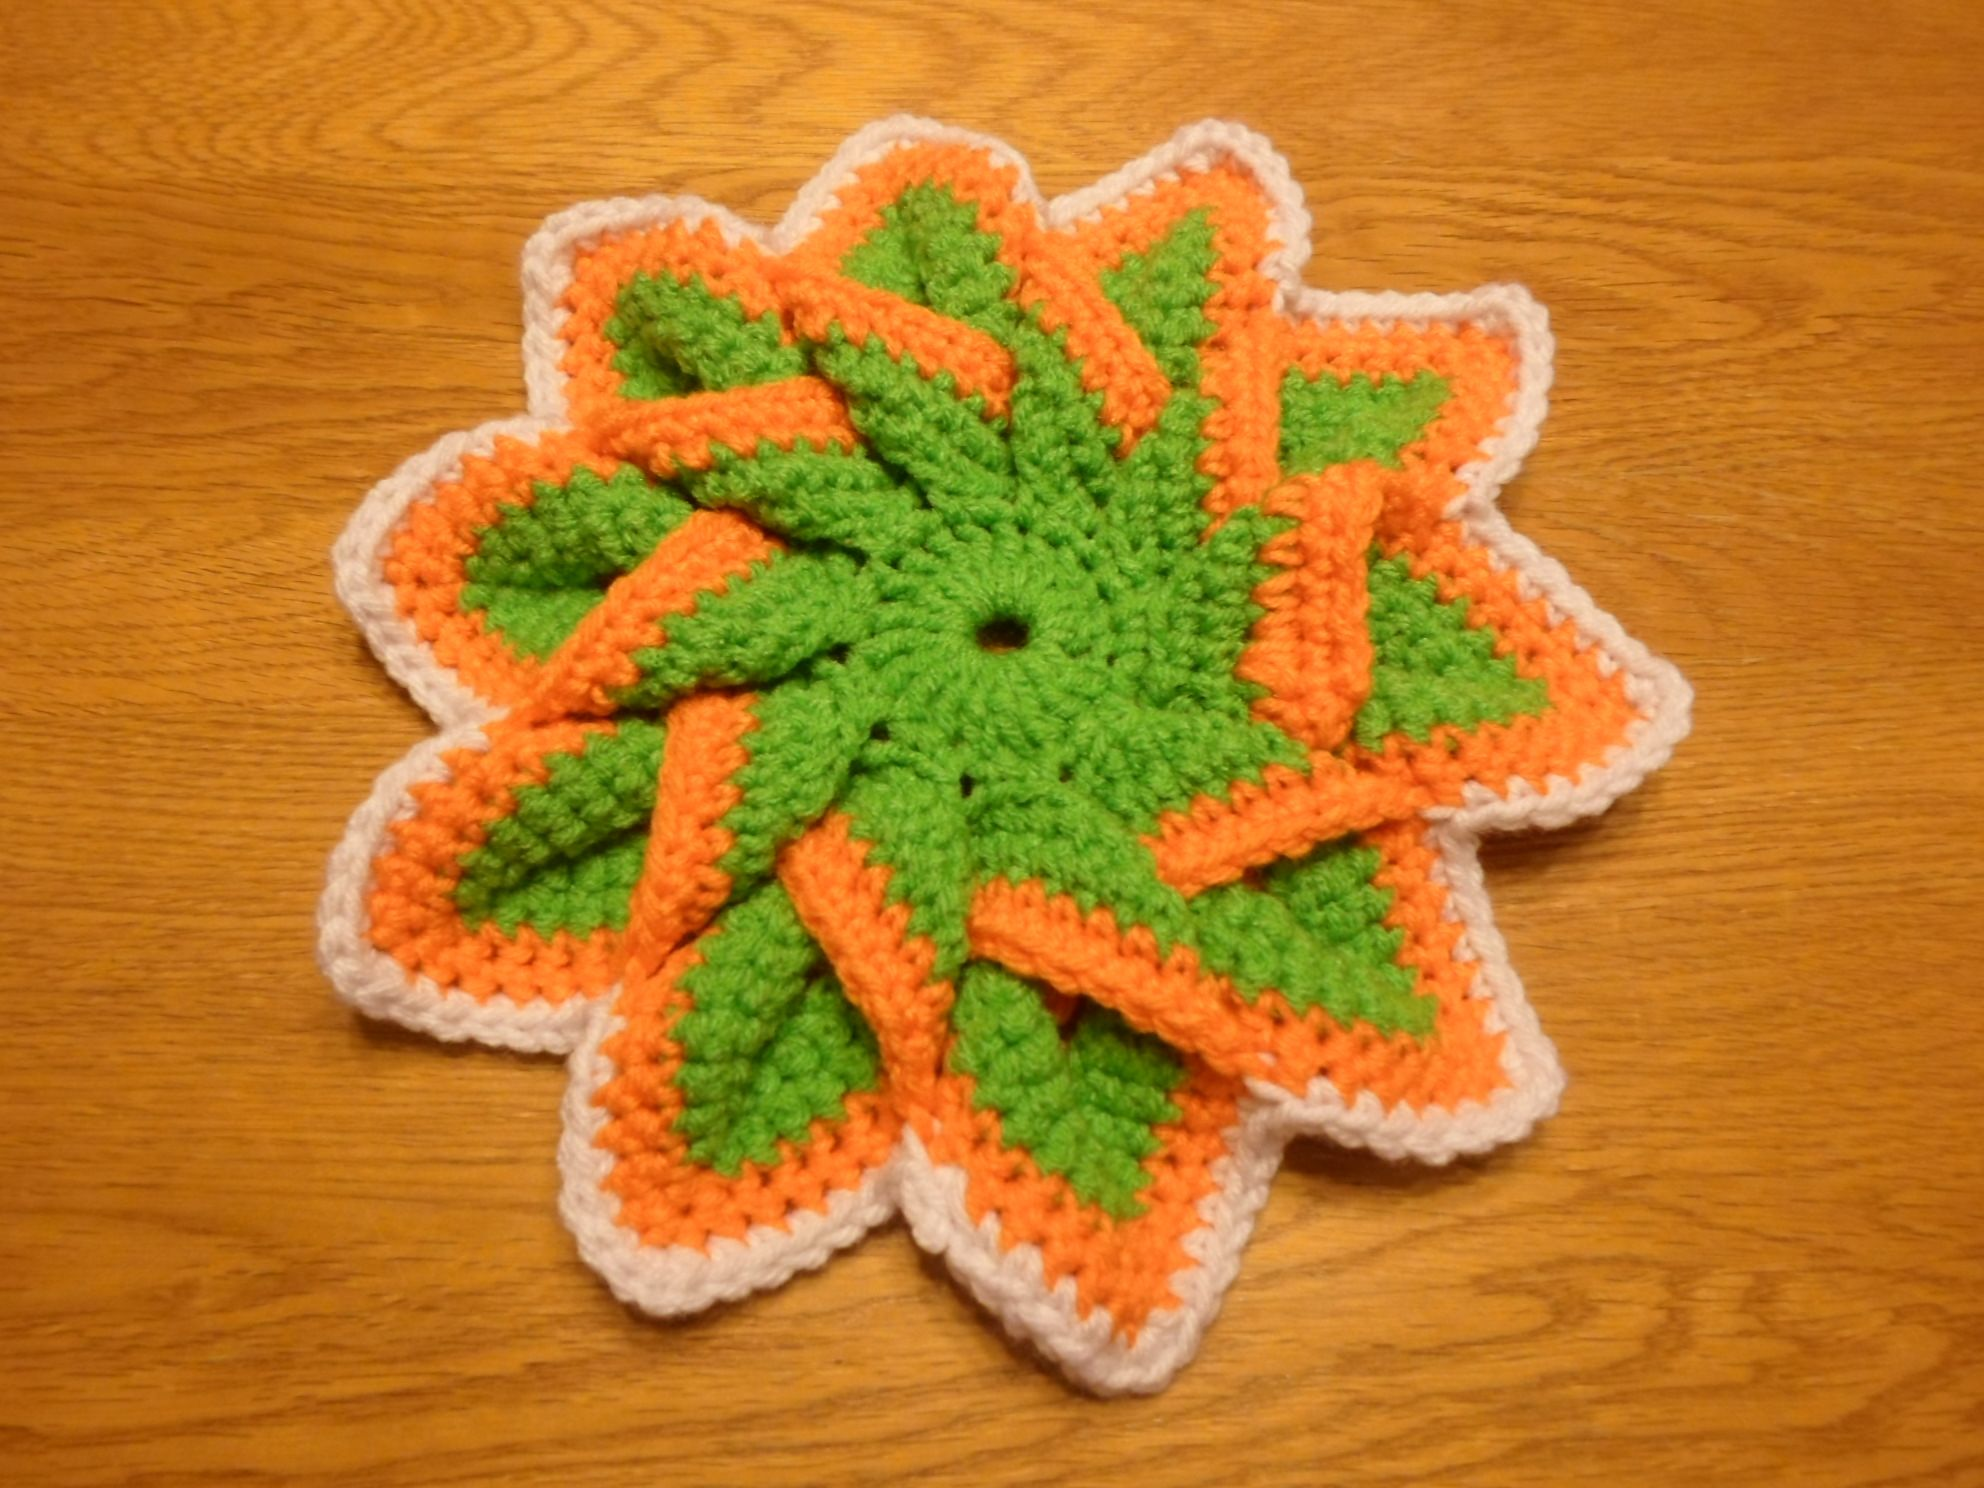 Trivet/pot holder has a really cool 3D design.  totally enjoying creating these